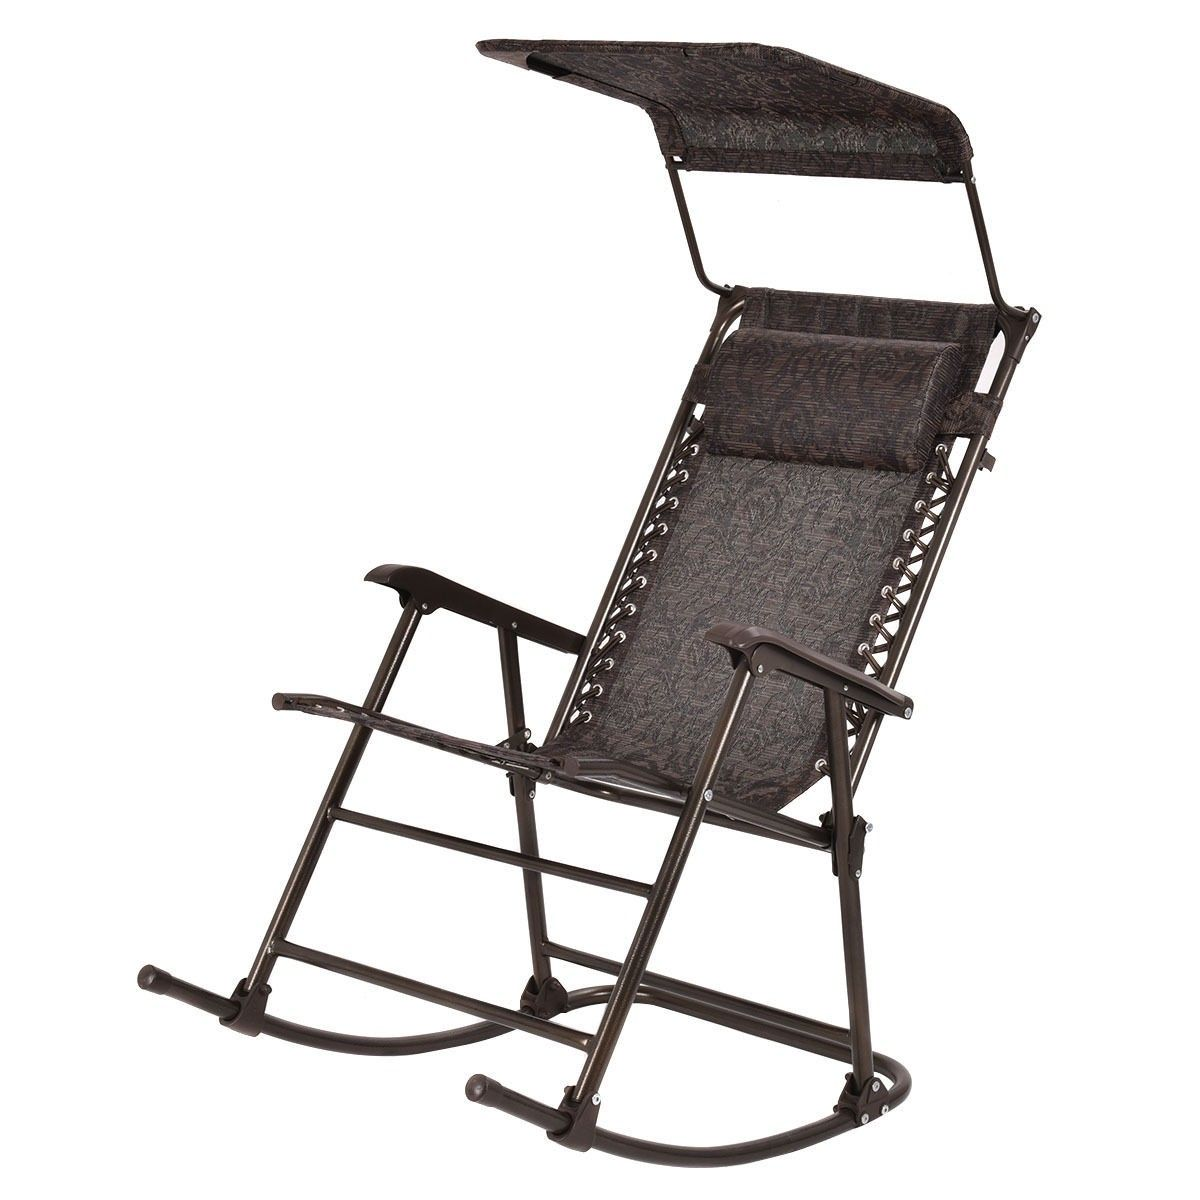 Outdoor Folding Rocking Chair With Canopy and Headrest